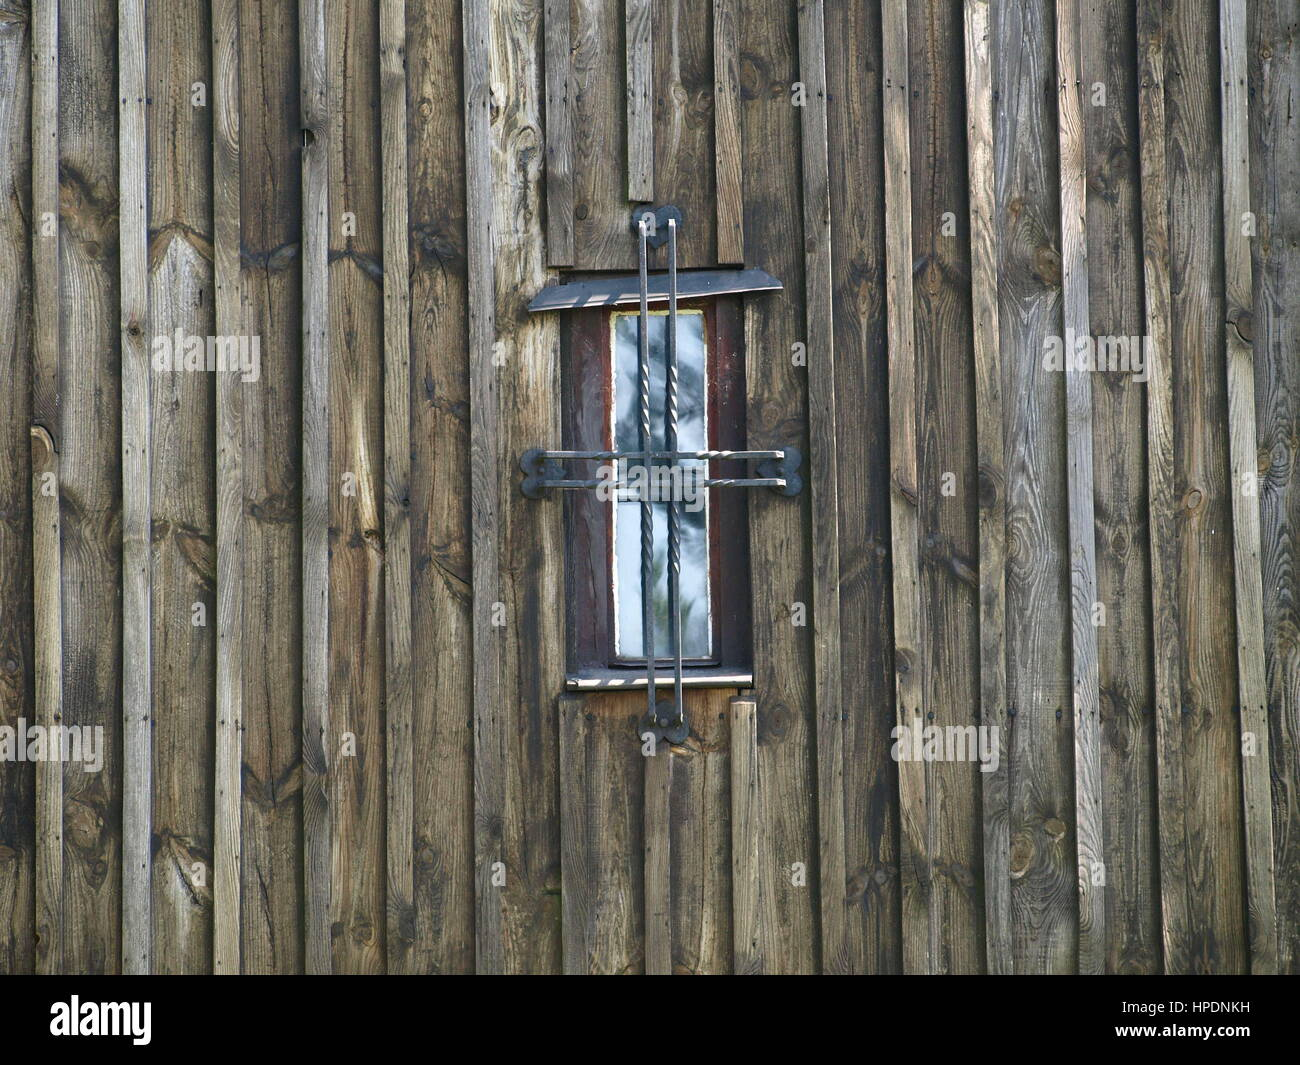 Window in old wooden building - Stock Image